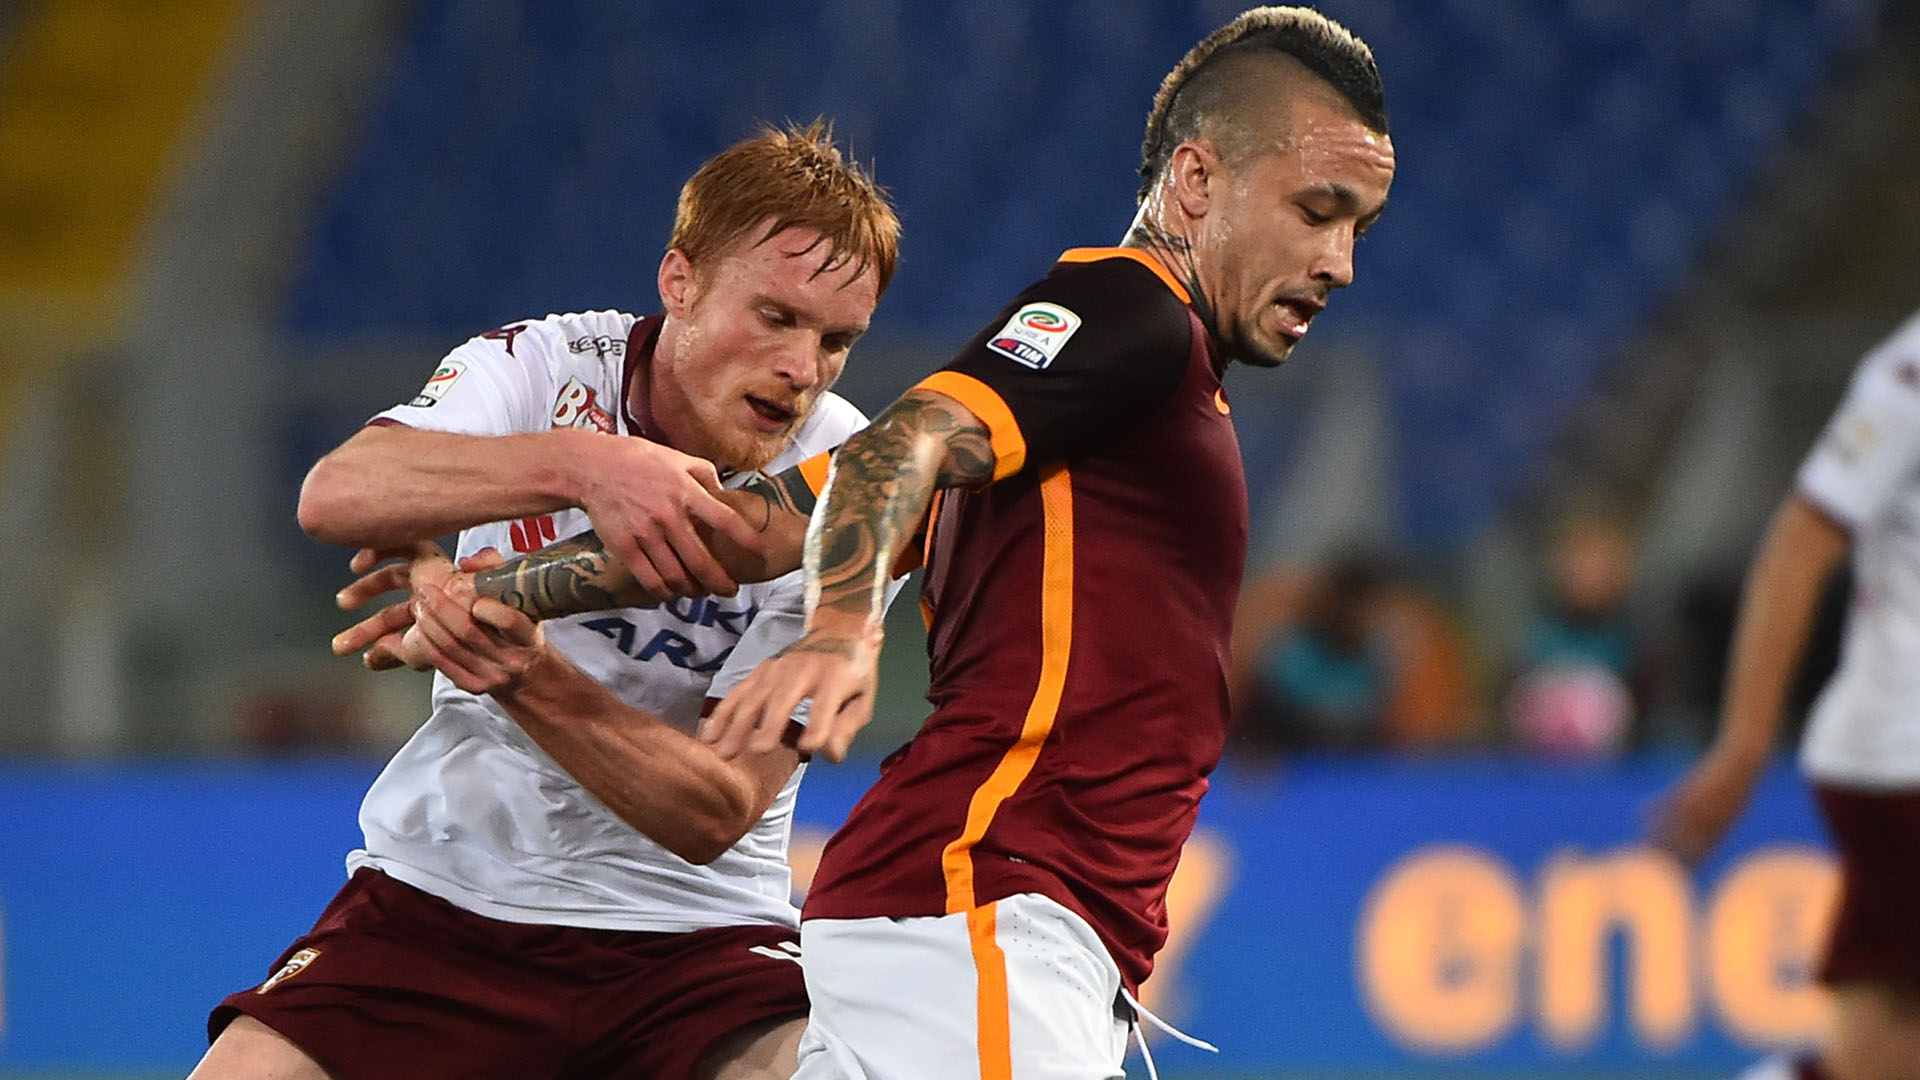 Video: AS Roma vs Torino